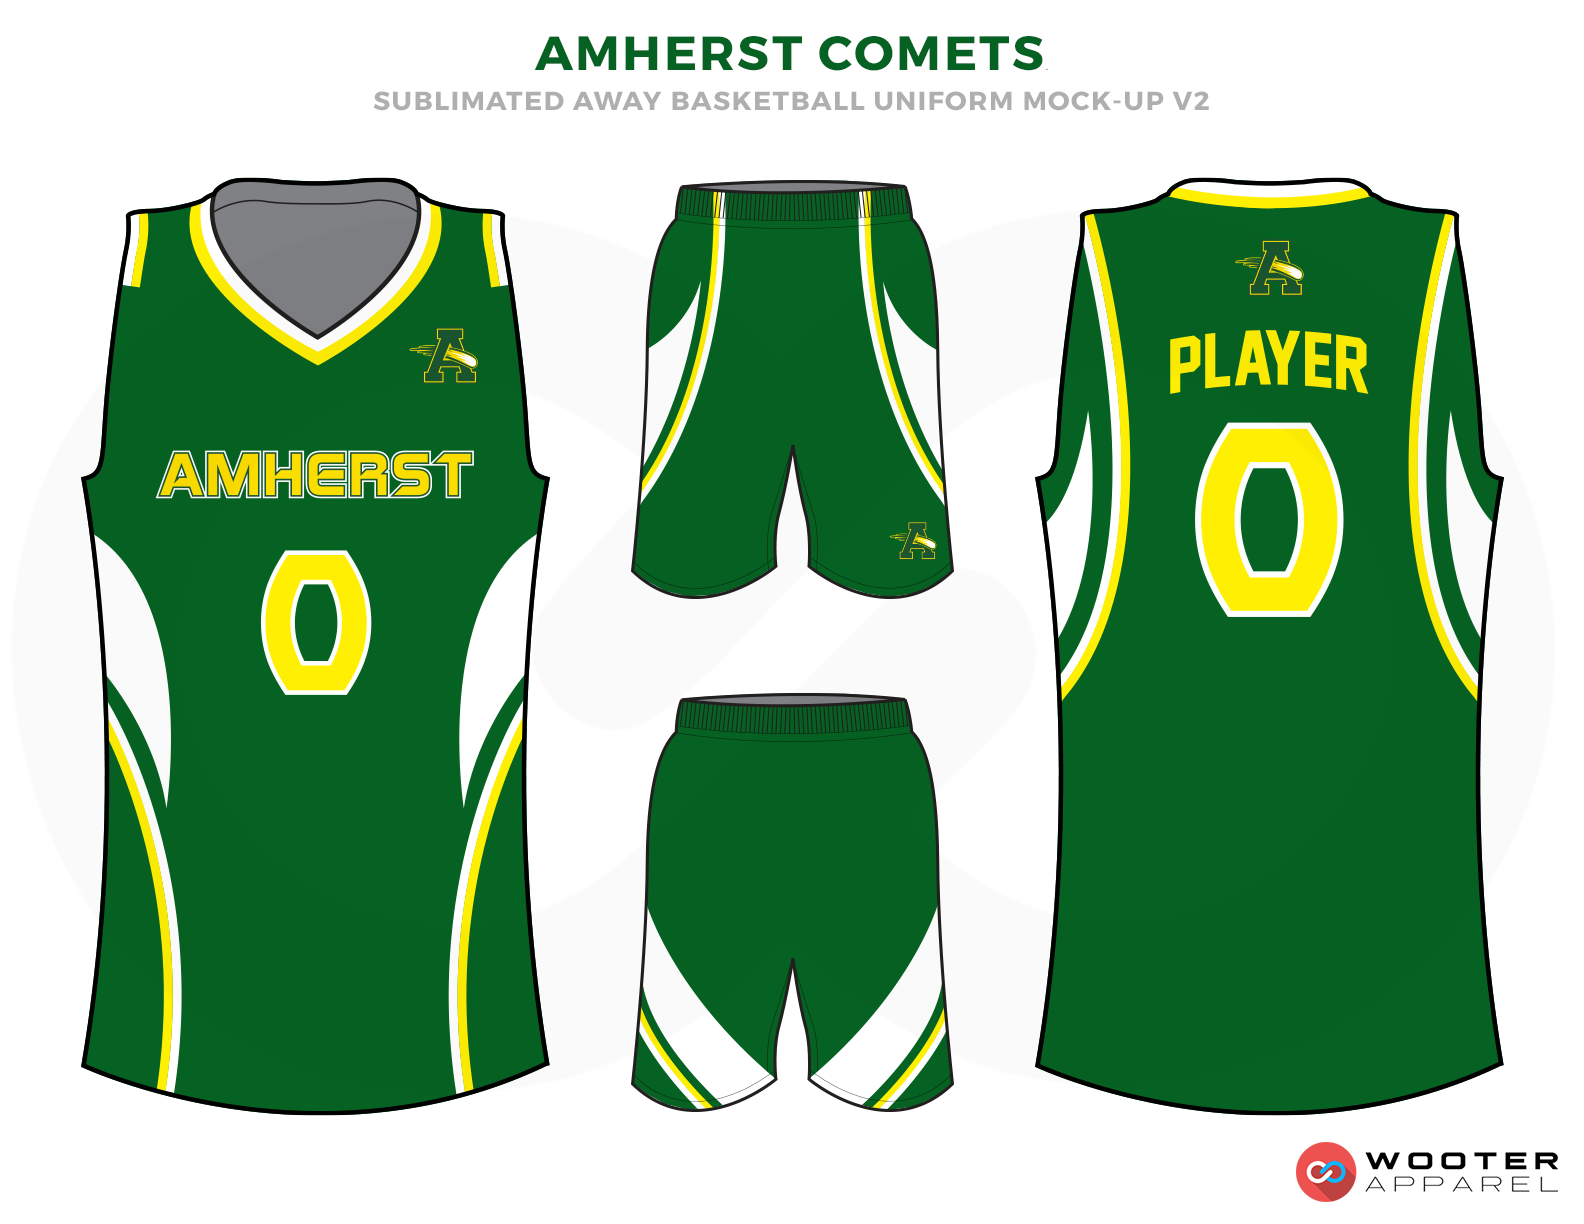 AMHERST COMETS Green Yellow and White Basketball Uniforms, Jersey and Shorts